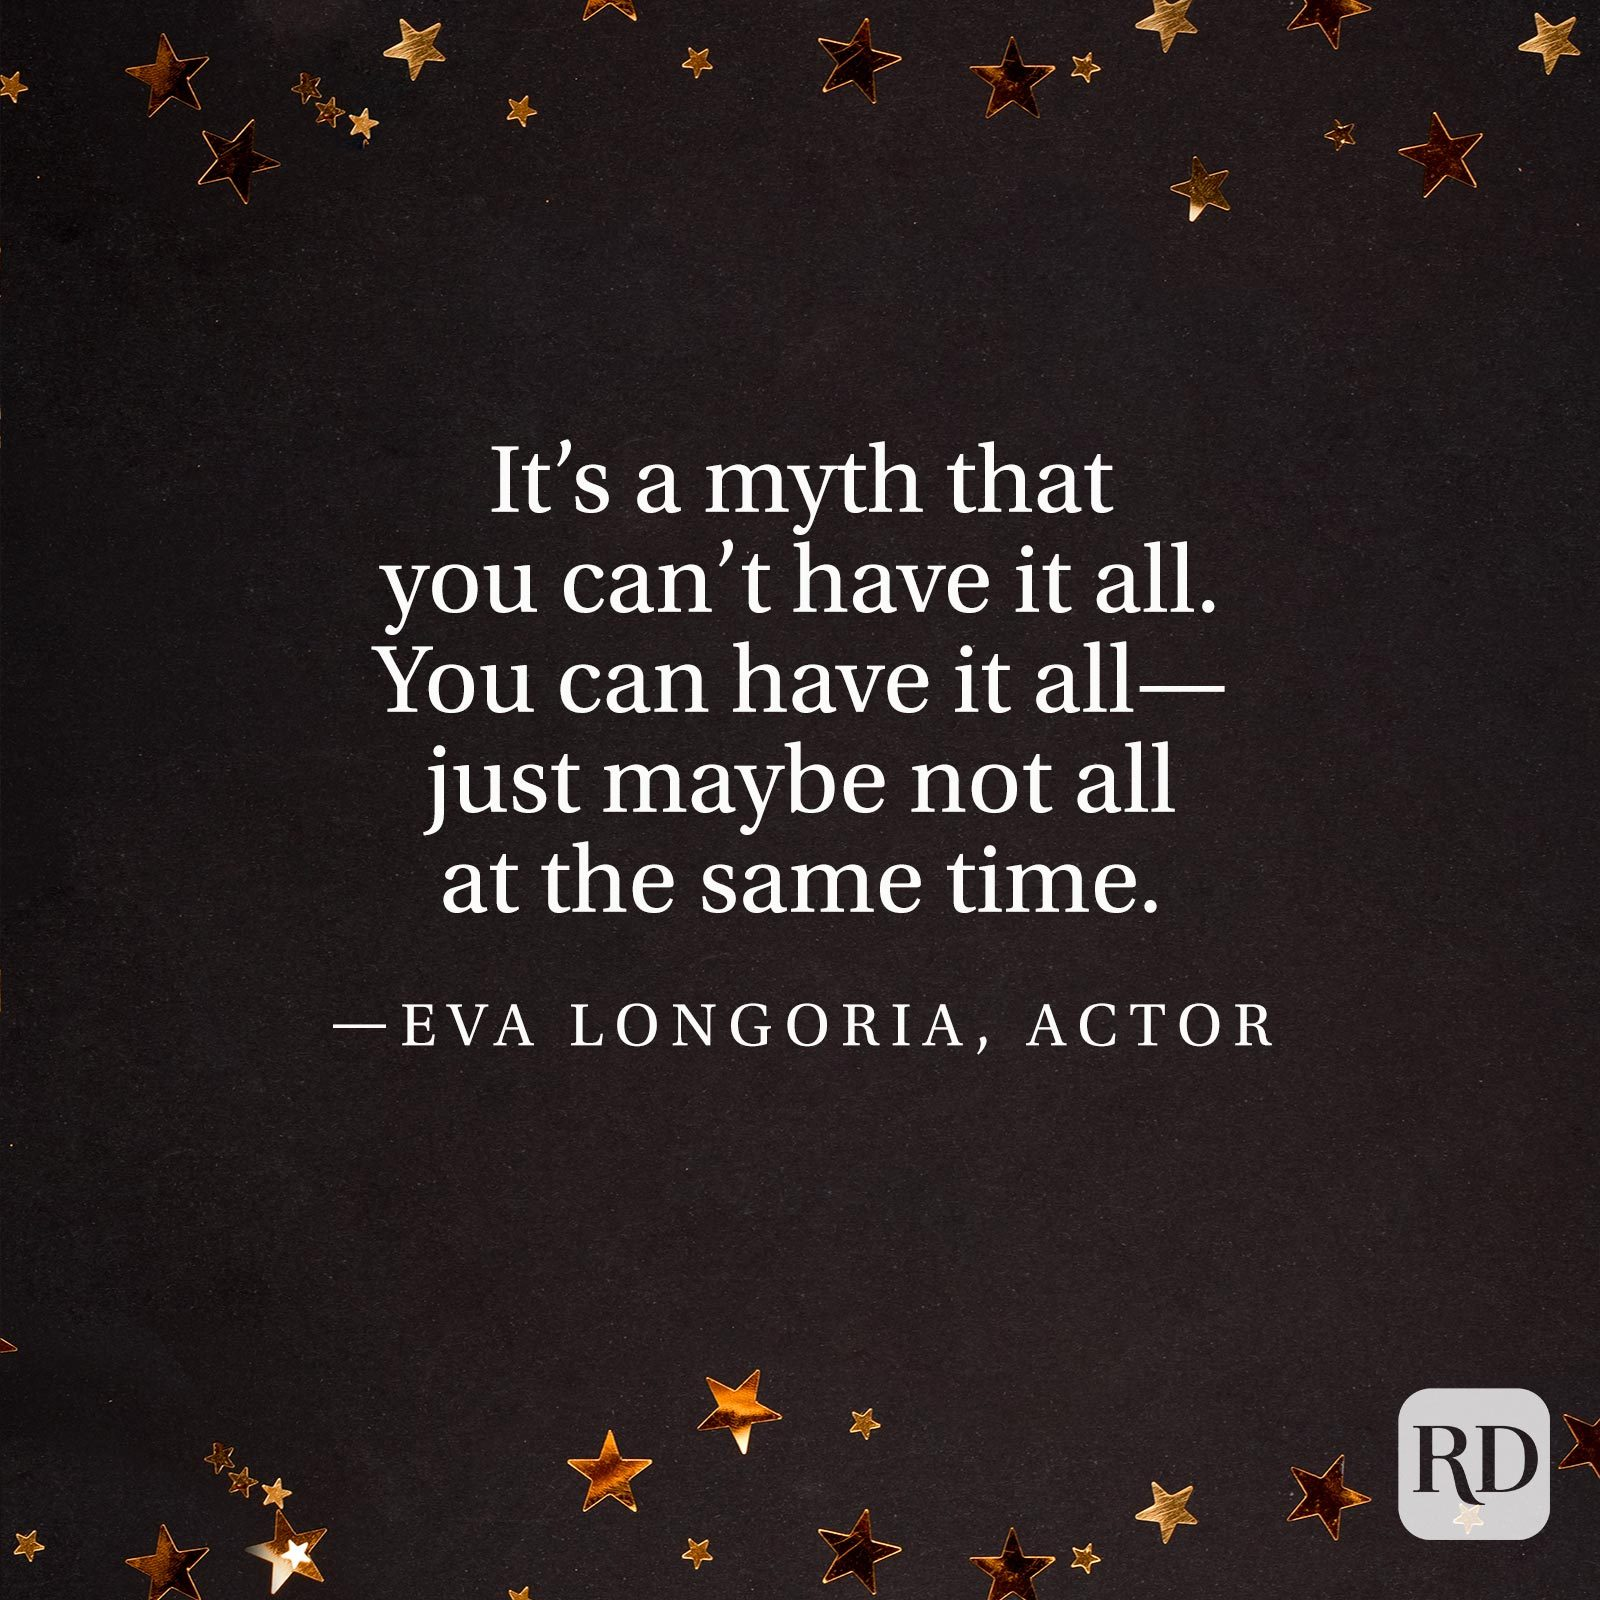 """It's a myth that you can't have it all. You can have it all—just maybe not all at the same time."" —Eva Longoria, actor"